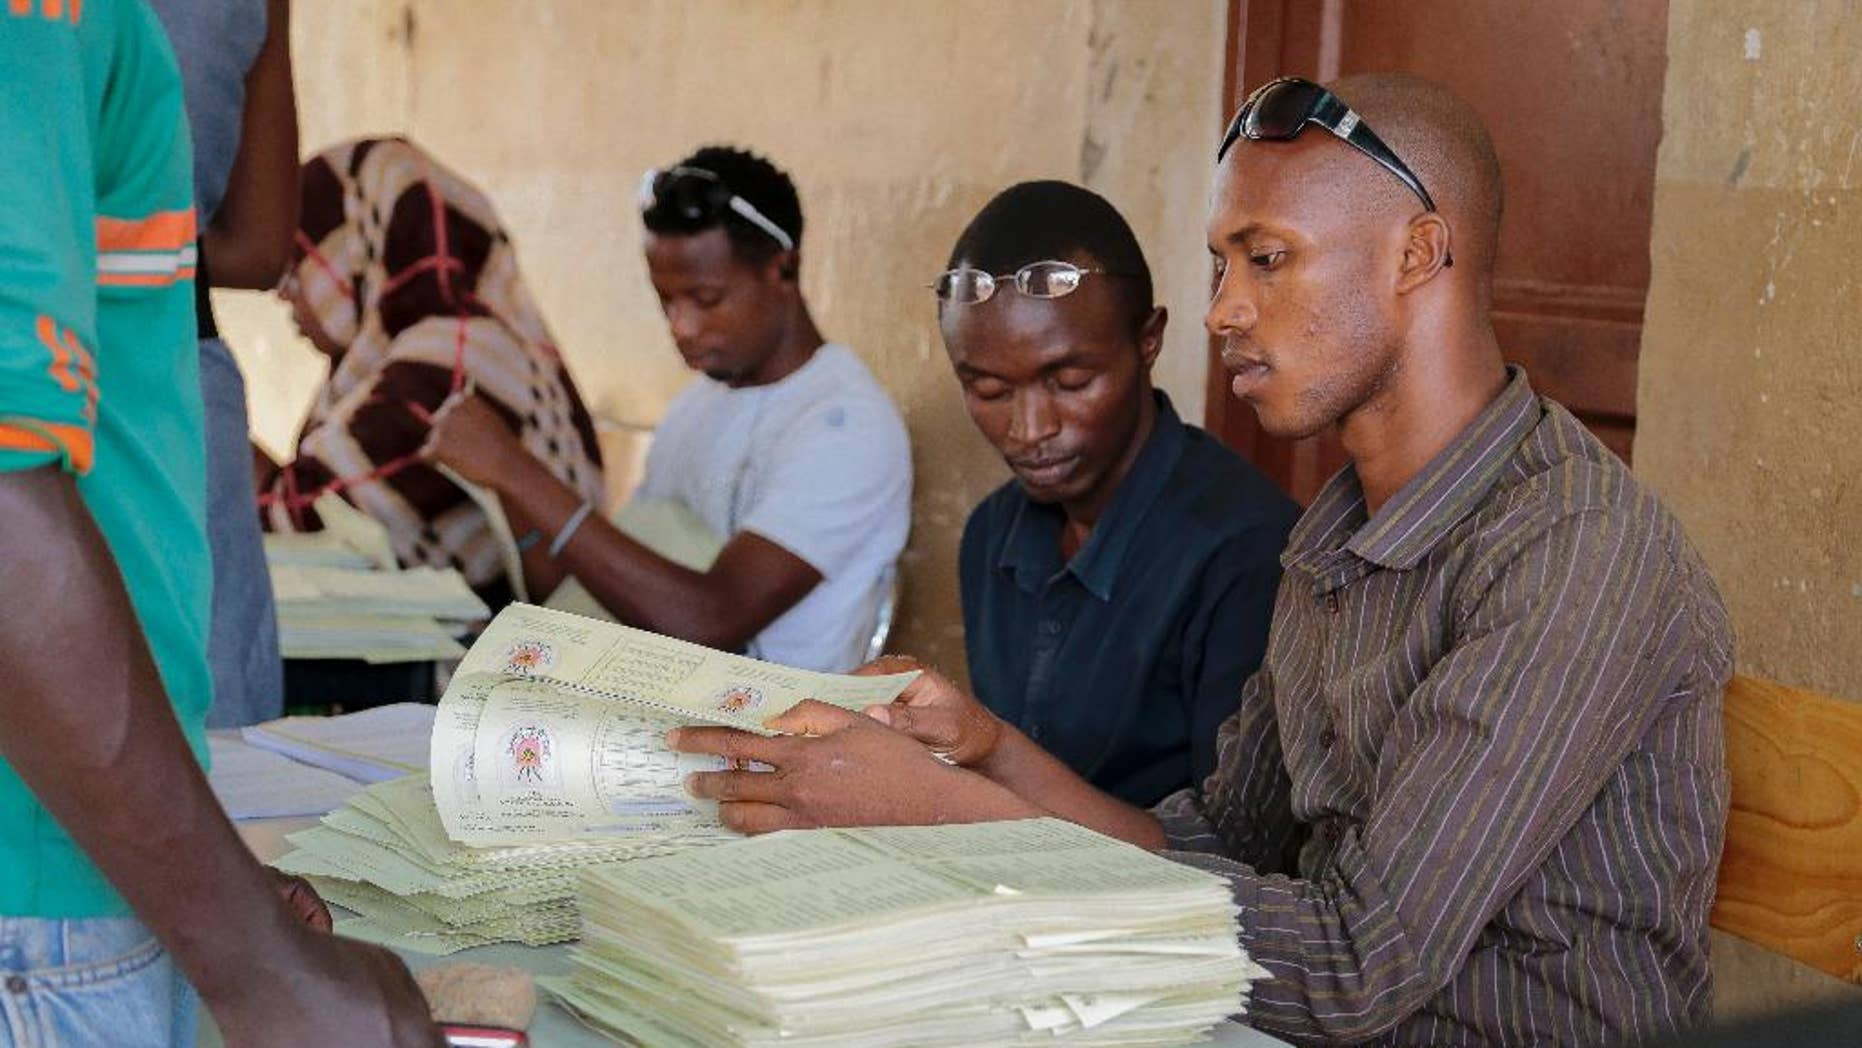 FILE - In this Thursday, June 4, 2015 file photo, electoral voter cards are distributed in the capital Bujumbura, Burundi. A spokesman for Burundi's electoral commission told The Associated Press Monday, June 8, 2015 that a new electoral schedule had been sent to President Pierre Nkurunziza for his approval, with presidential elections proposed to be held on July 15. (AP Photo/Berthier Mugiraneza, File)